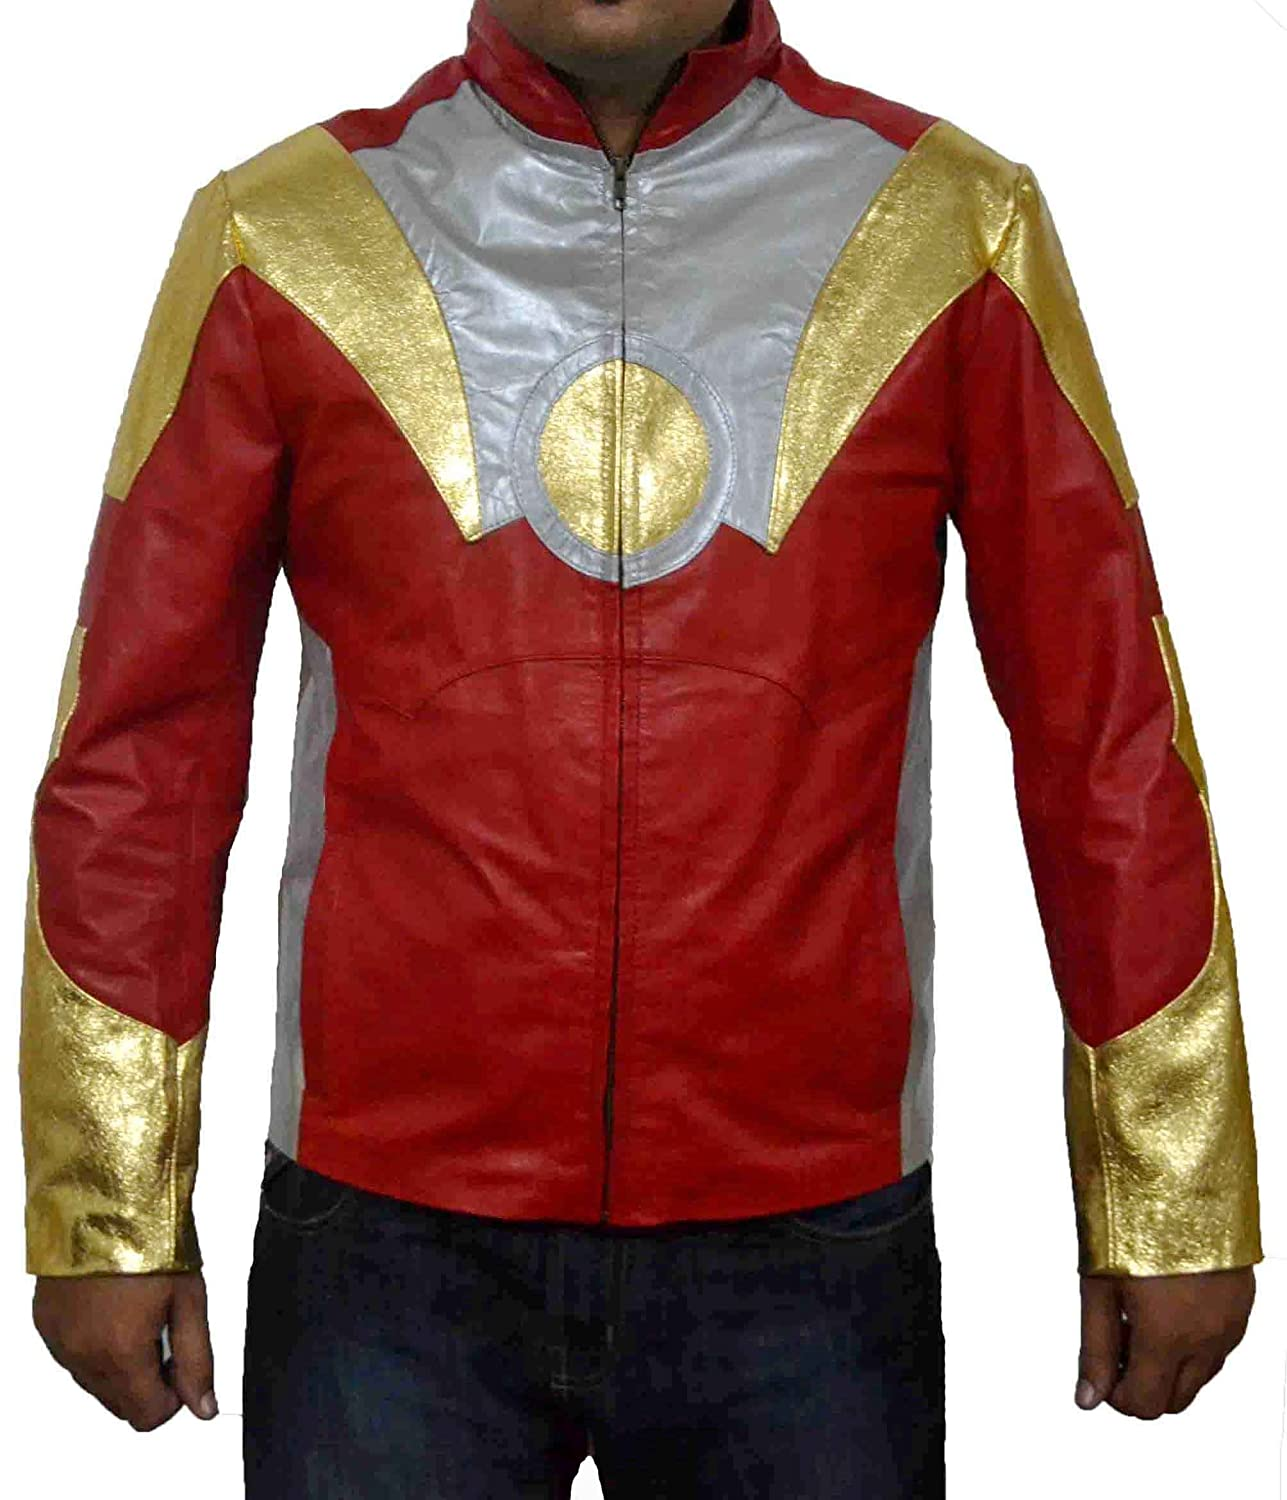 HLS Iron Man Tony Shark Special Golden Silver Red Sheep Leather Jacket